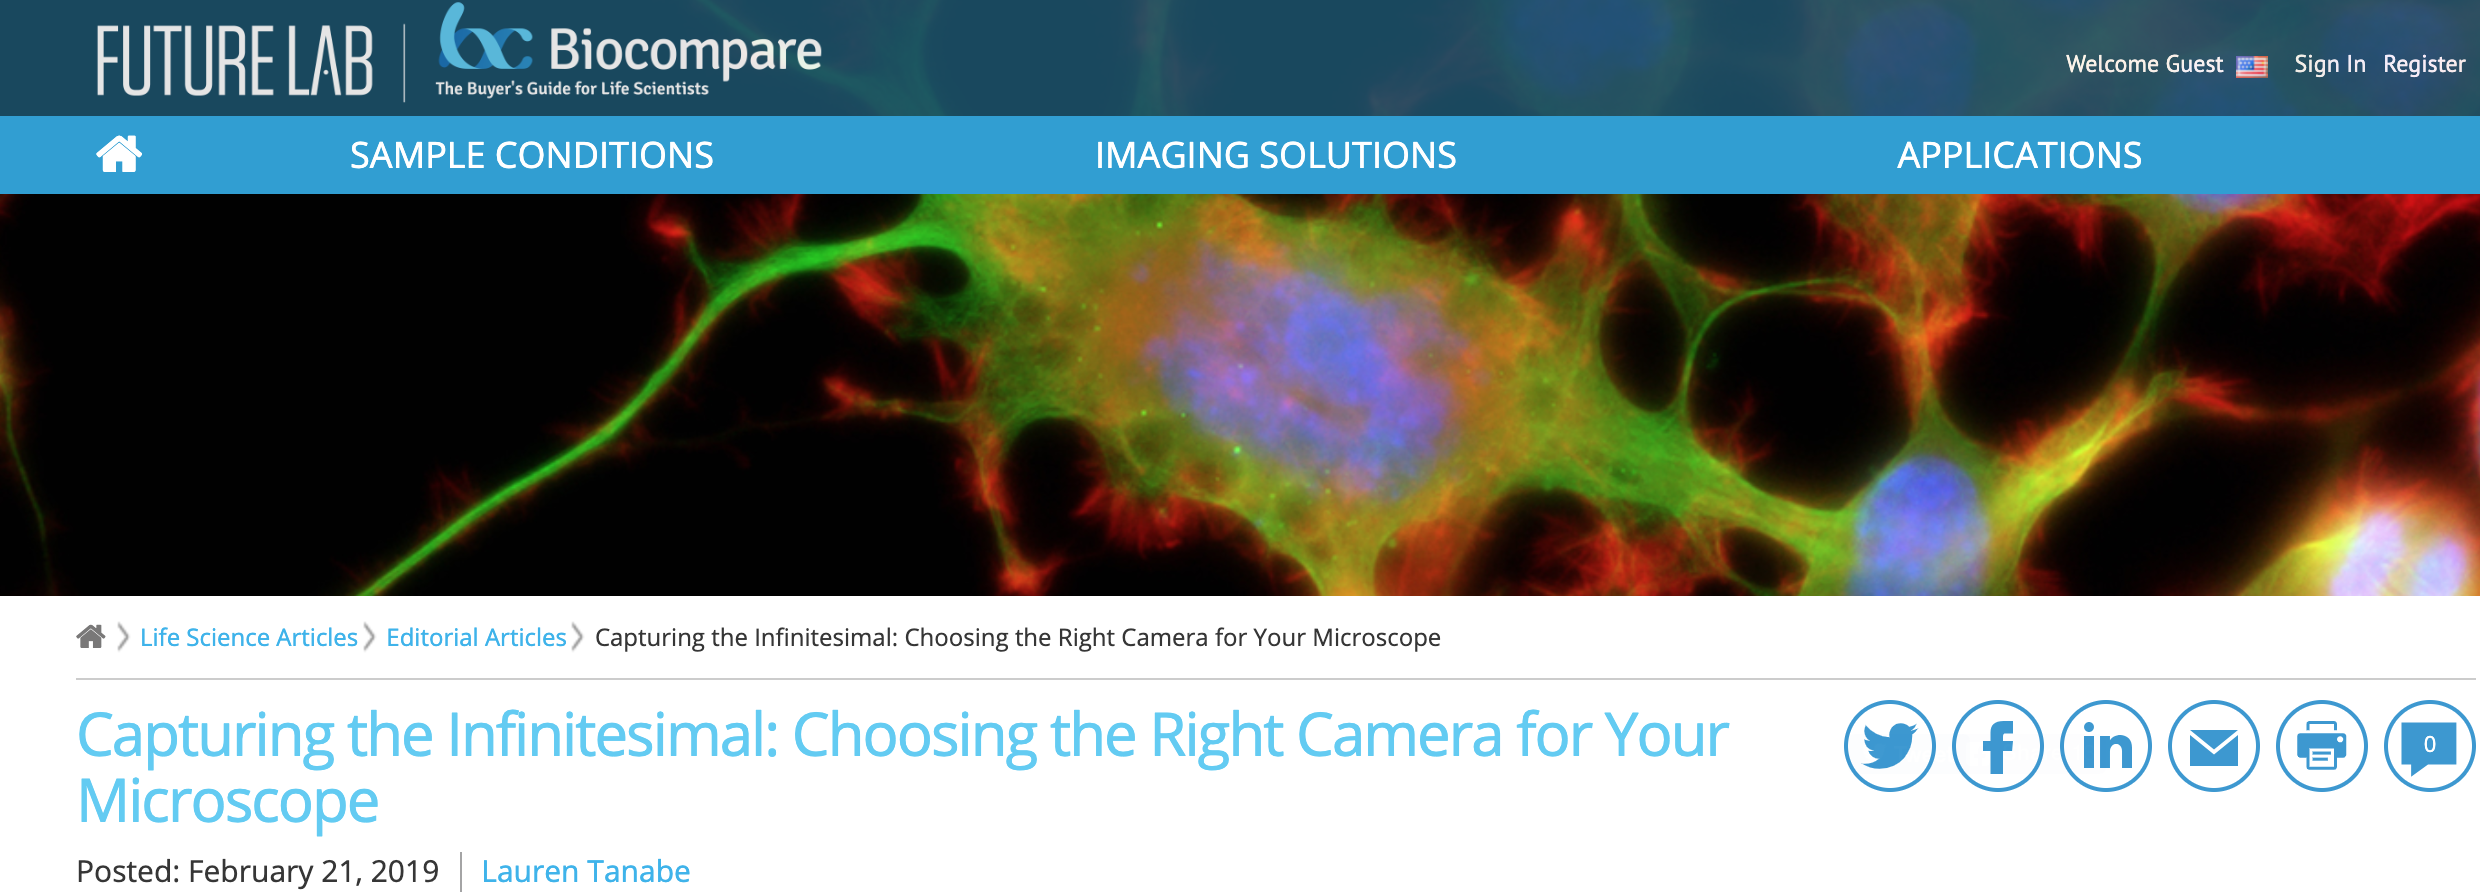 Capturing the Infinitesimal: Choosing the Right Camera for Your Microscope, BioCompare, February 21, 2019 -